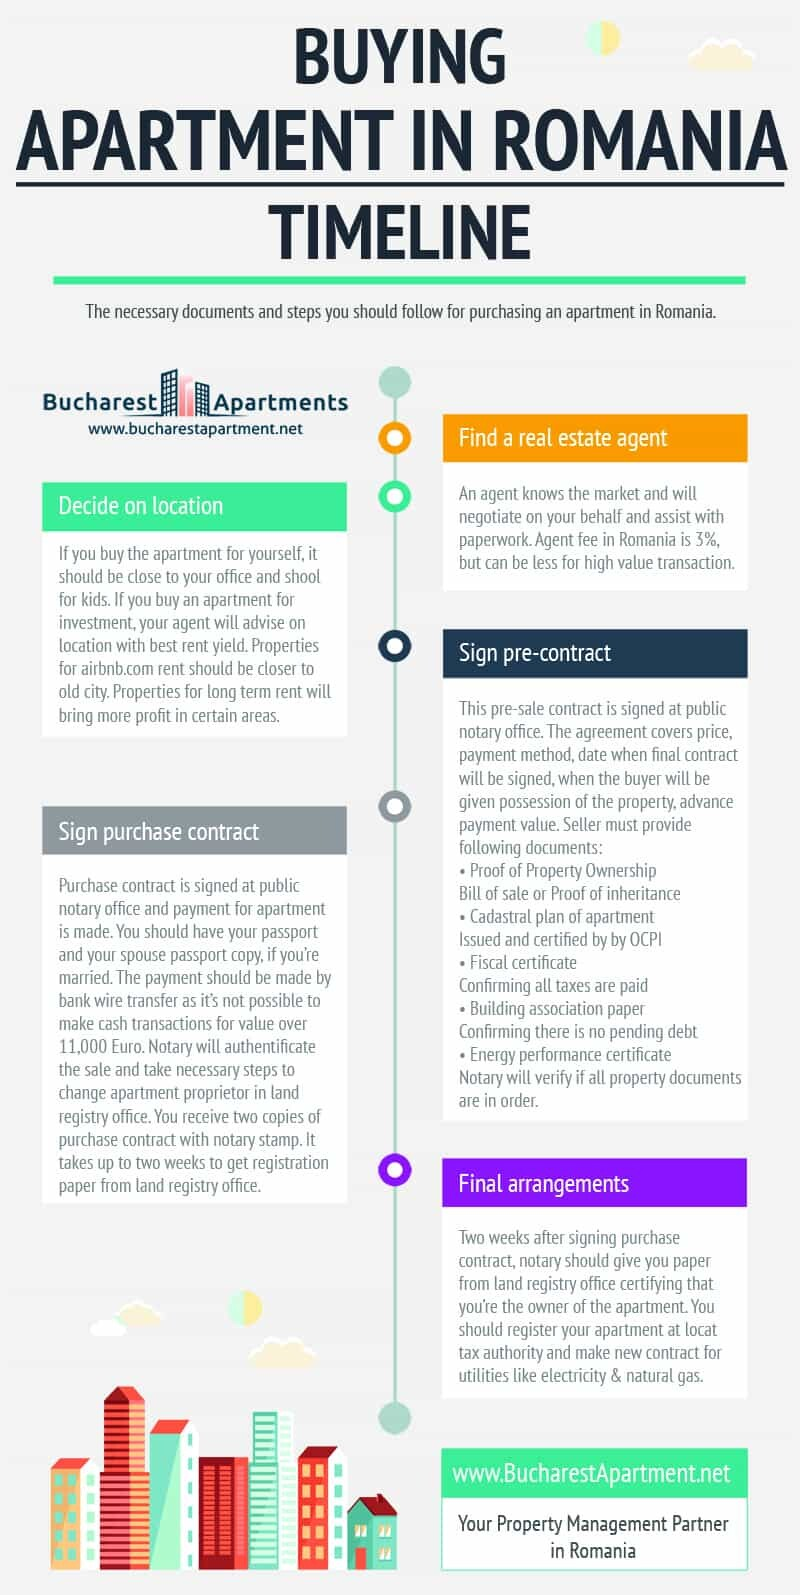 infographic representation of steps to follow when purchasing an apartment in Romania